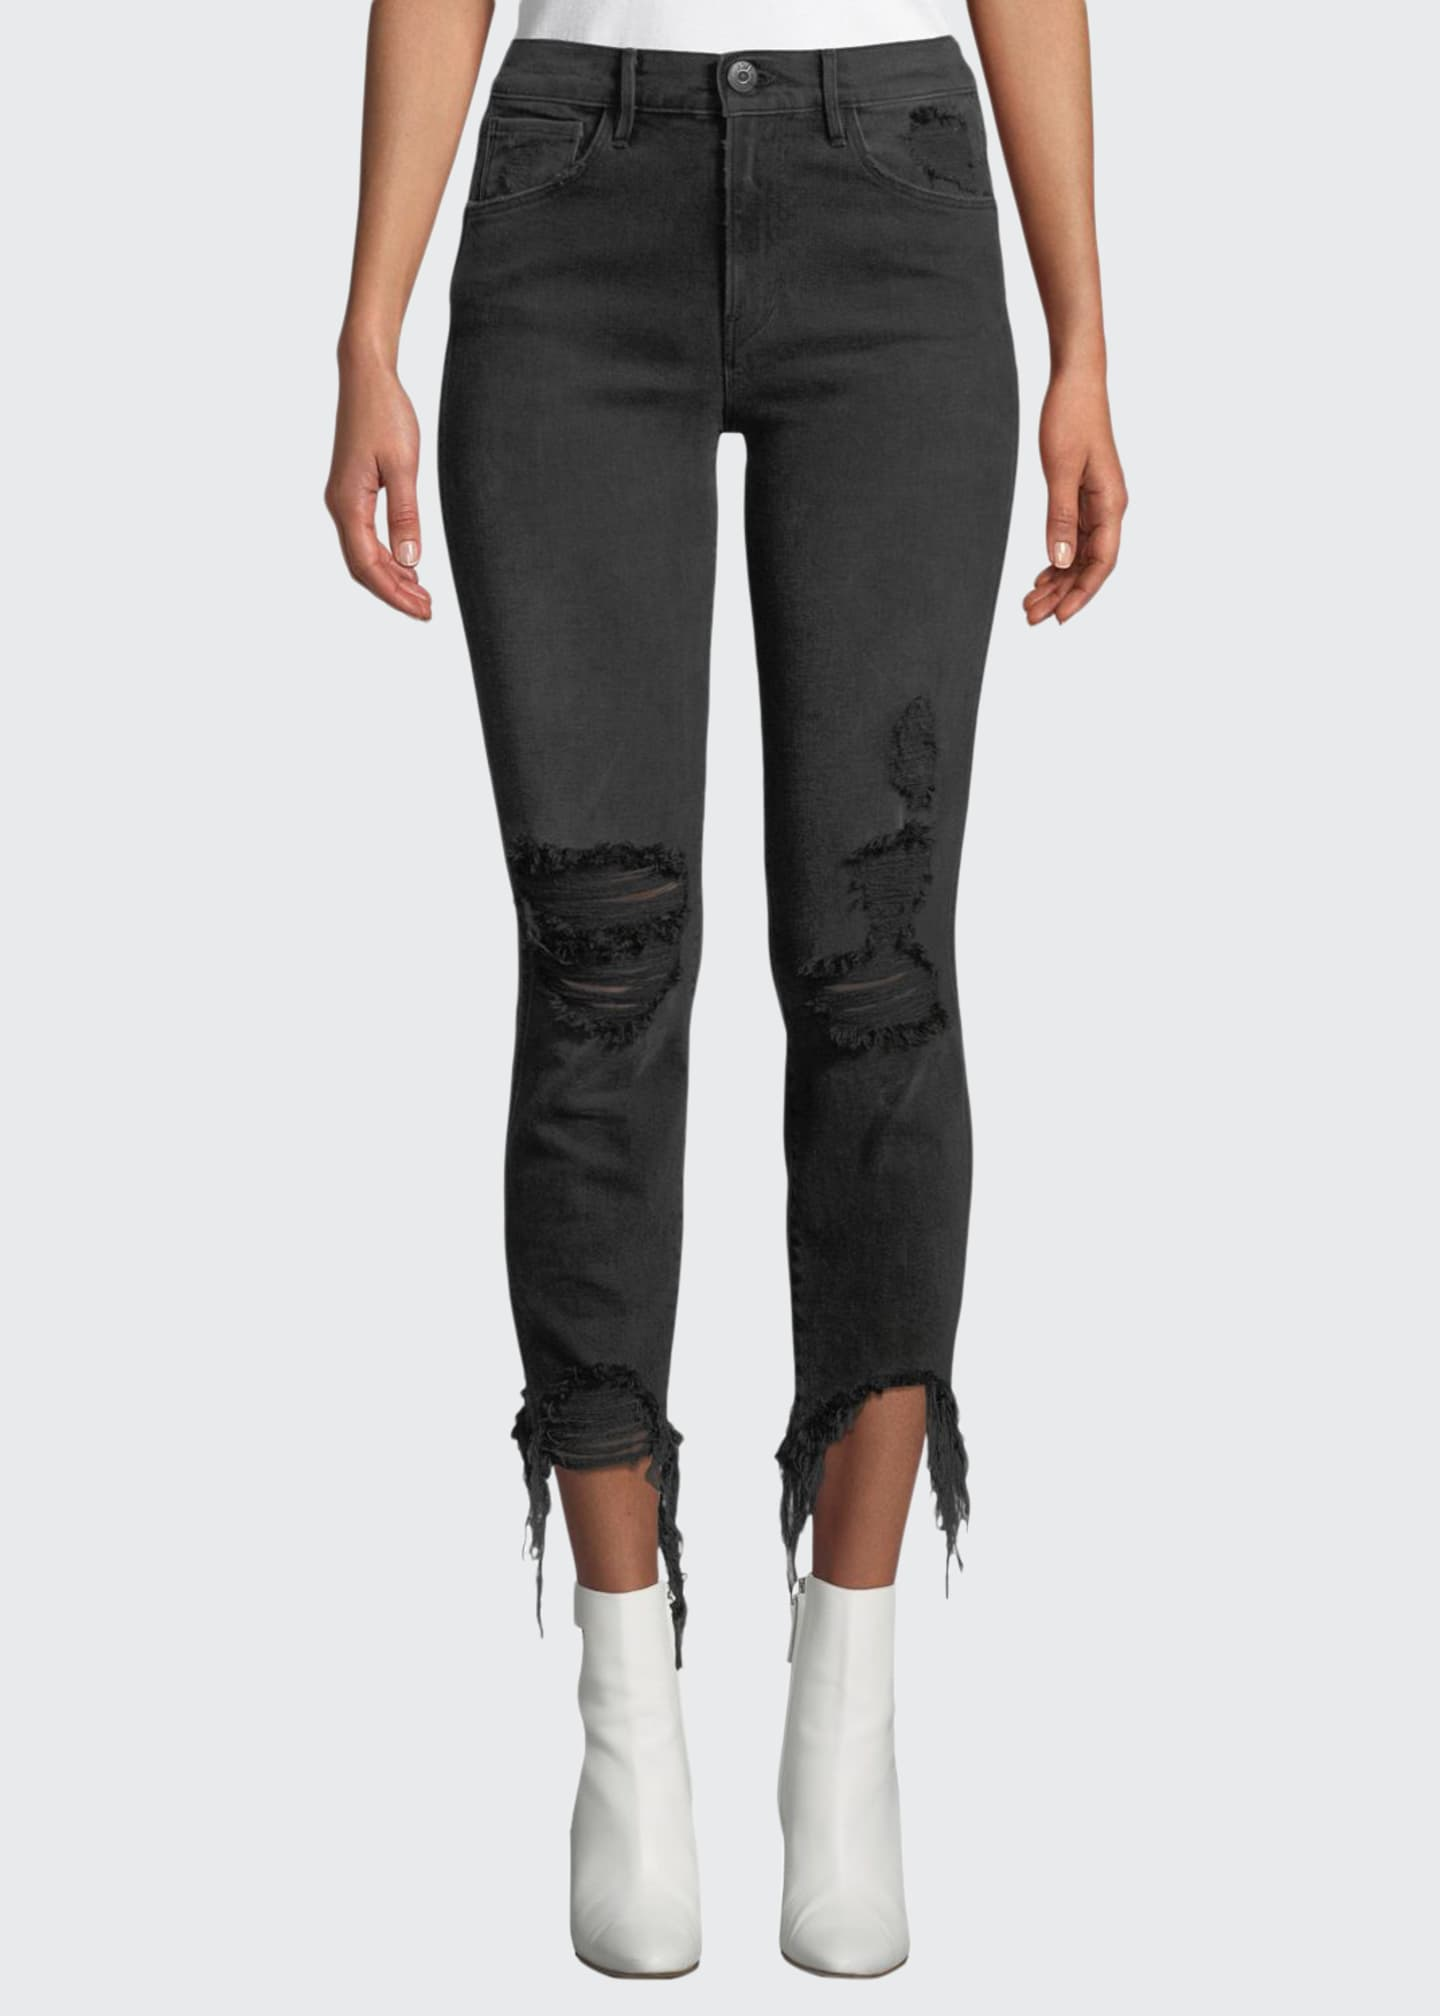 3x1 W3 Authentic Straight-Leg Crop Distressed Jeans